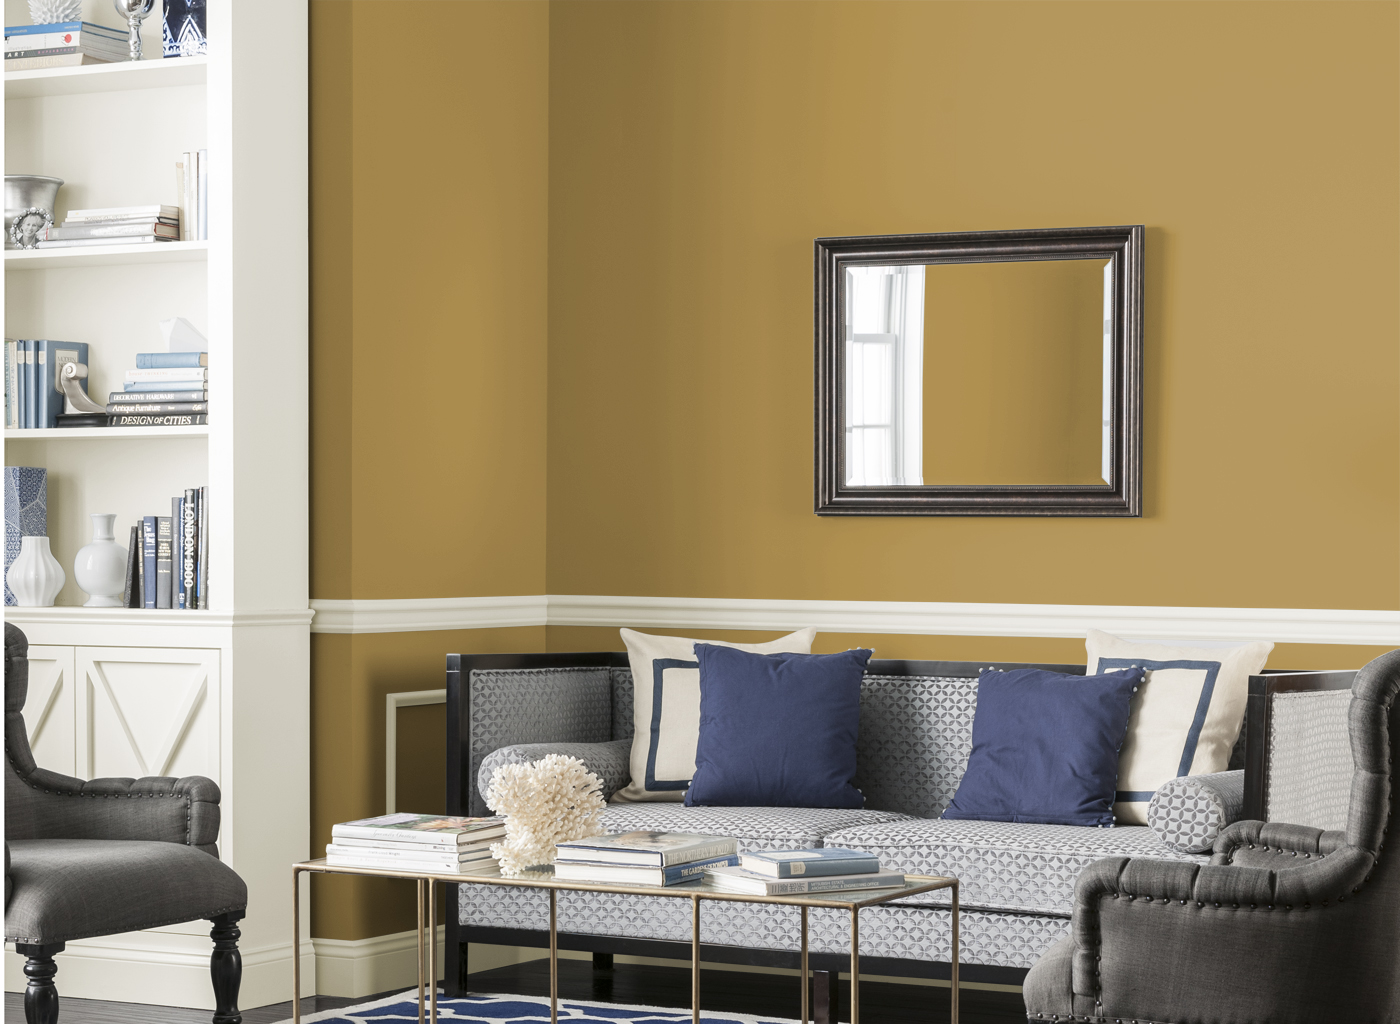 Cat Rumah Warna Gold Kombinasi Warna Cat Dulux Wallpaper Dinding